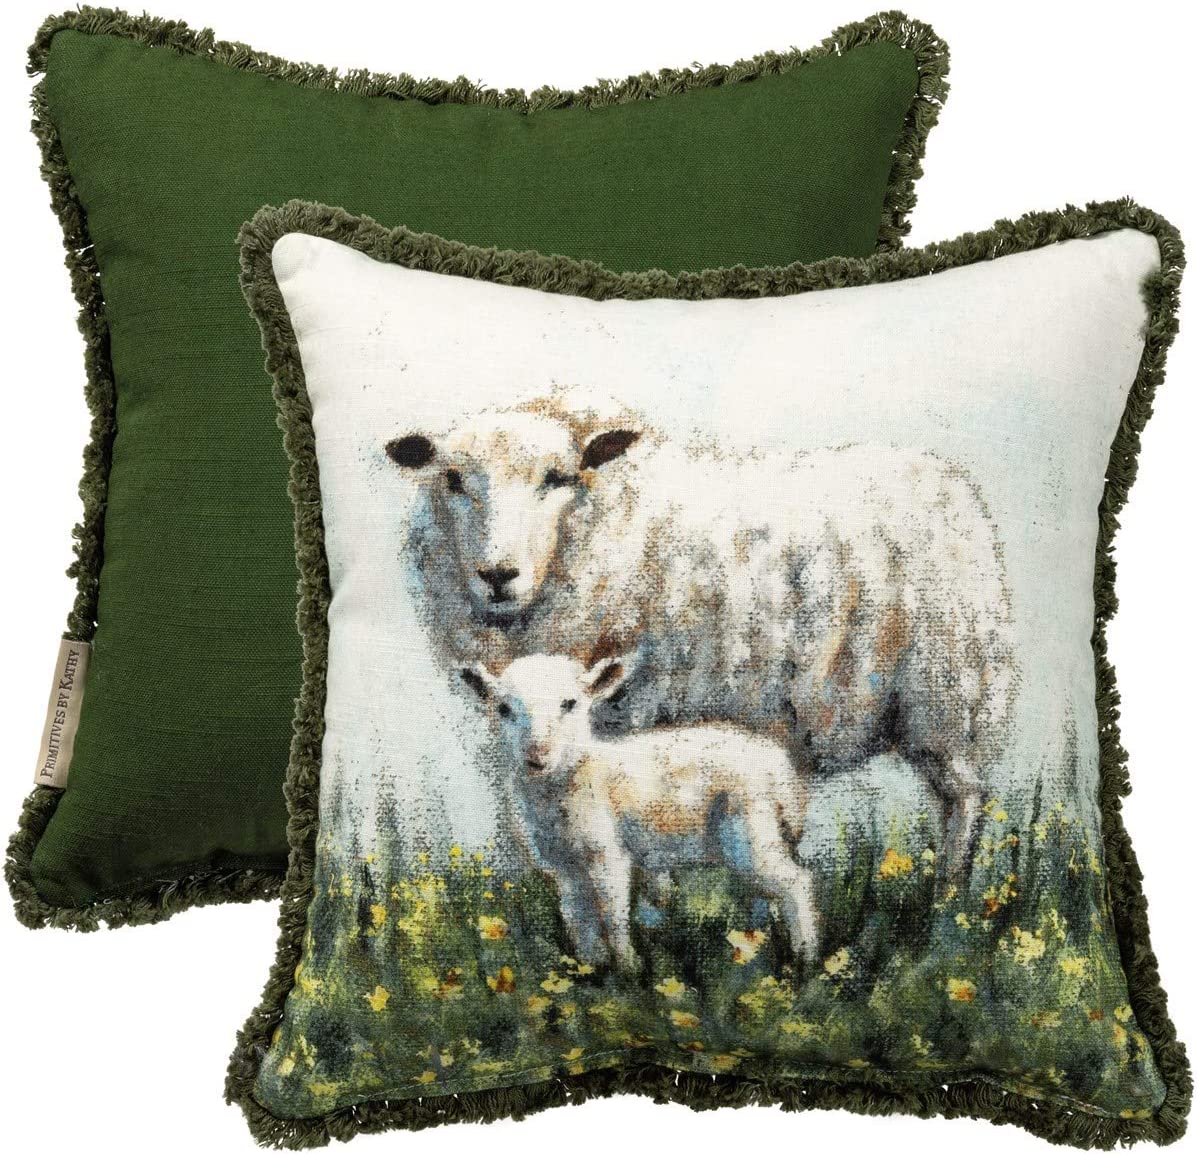 Primitives by Kathy, 105444, Sheep and Lamb Print Throw Pillow, Cotton Slub Fabric, Easter